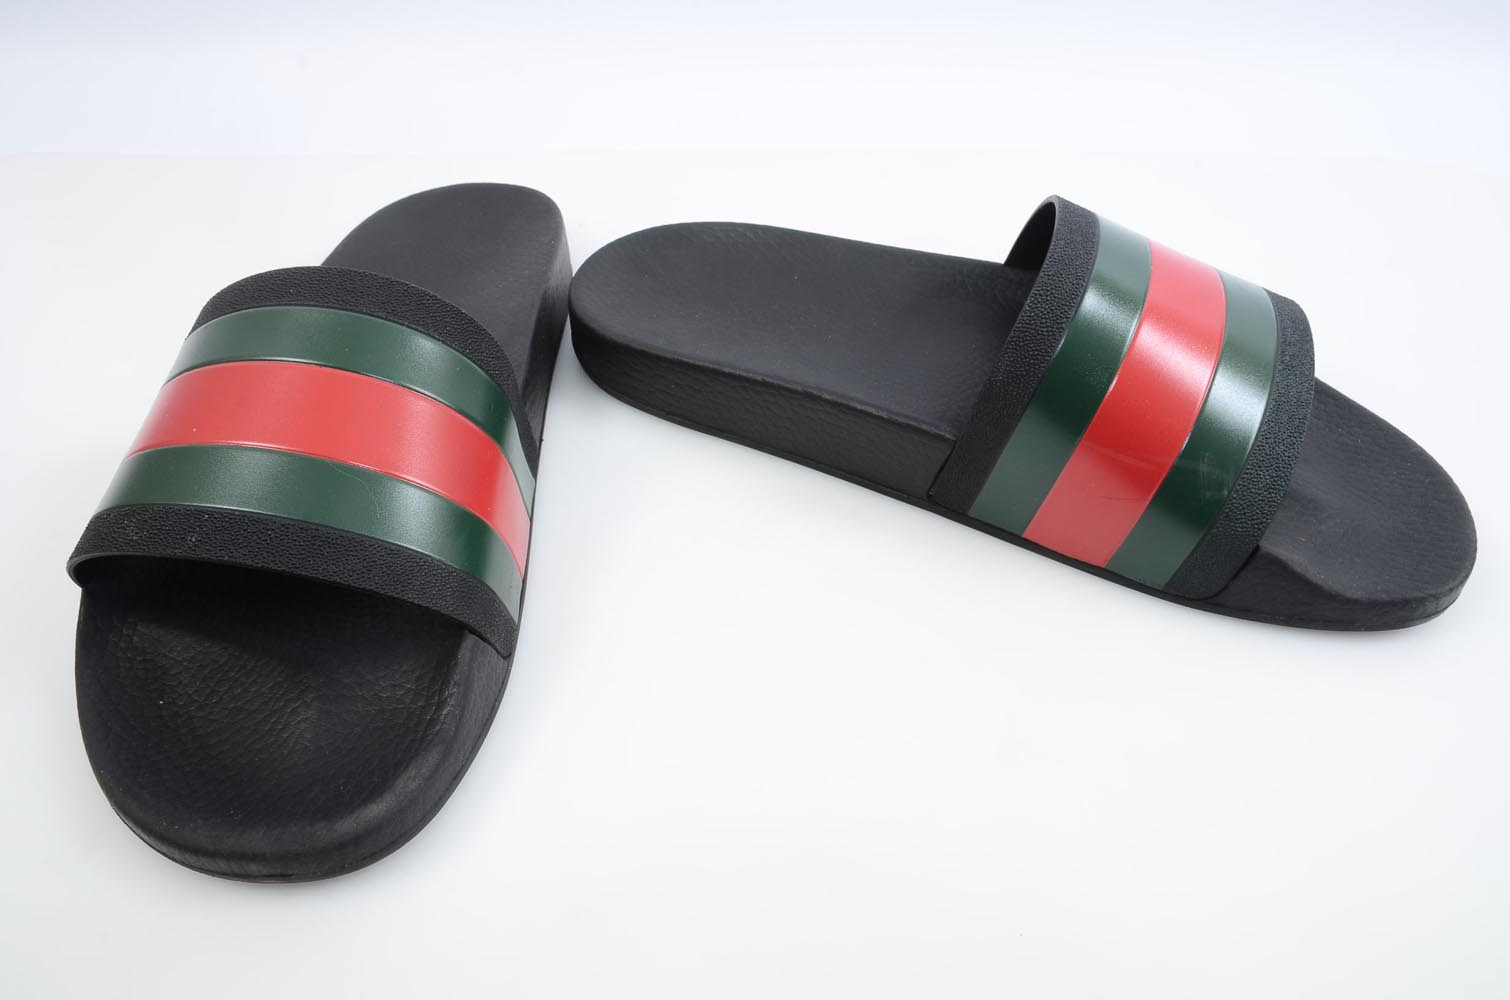 c0357bad8365 Gucci Pursuit black multi 12 signature stripe pool slide sandal UK11 shoe   210